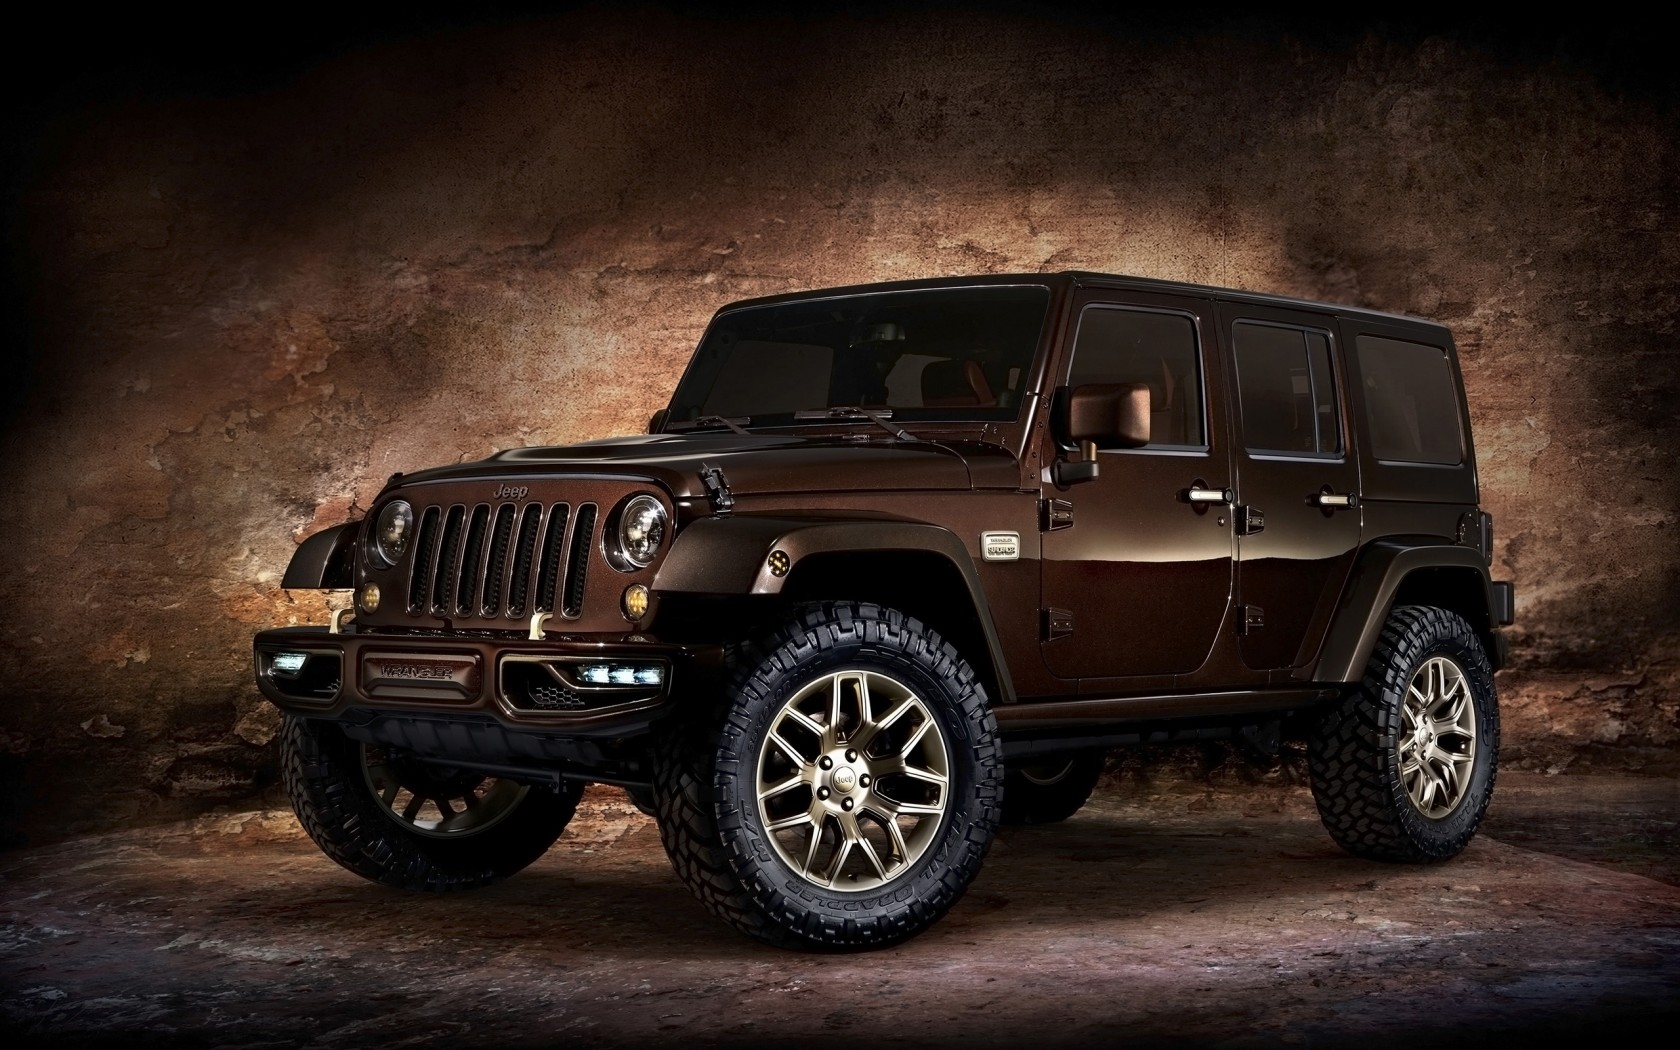 Jeep Car Images Hd: 2014 Jeep Wrangler Sundancer Concept Wallpaper